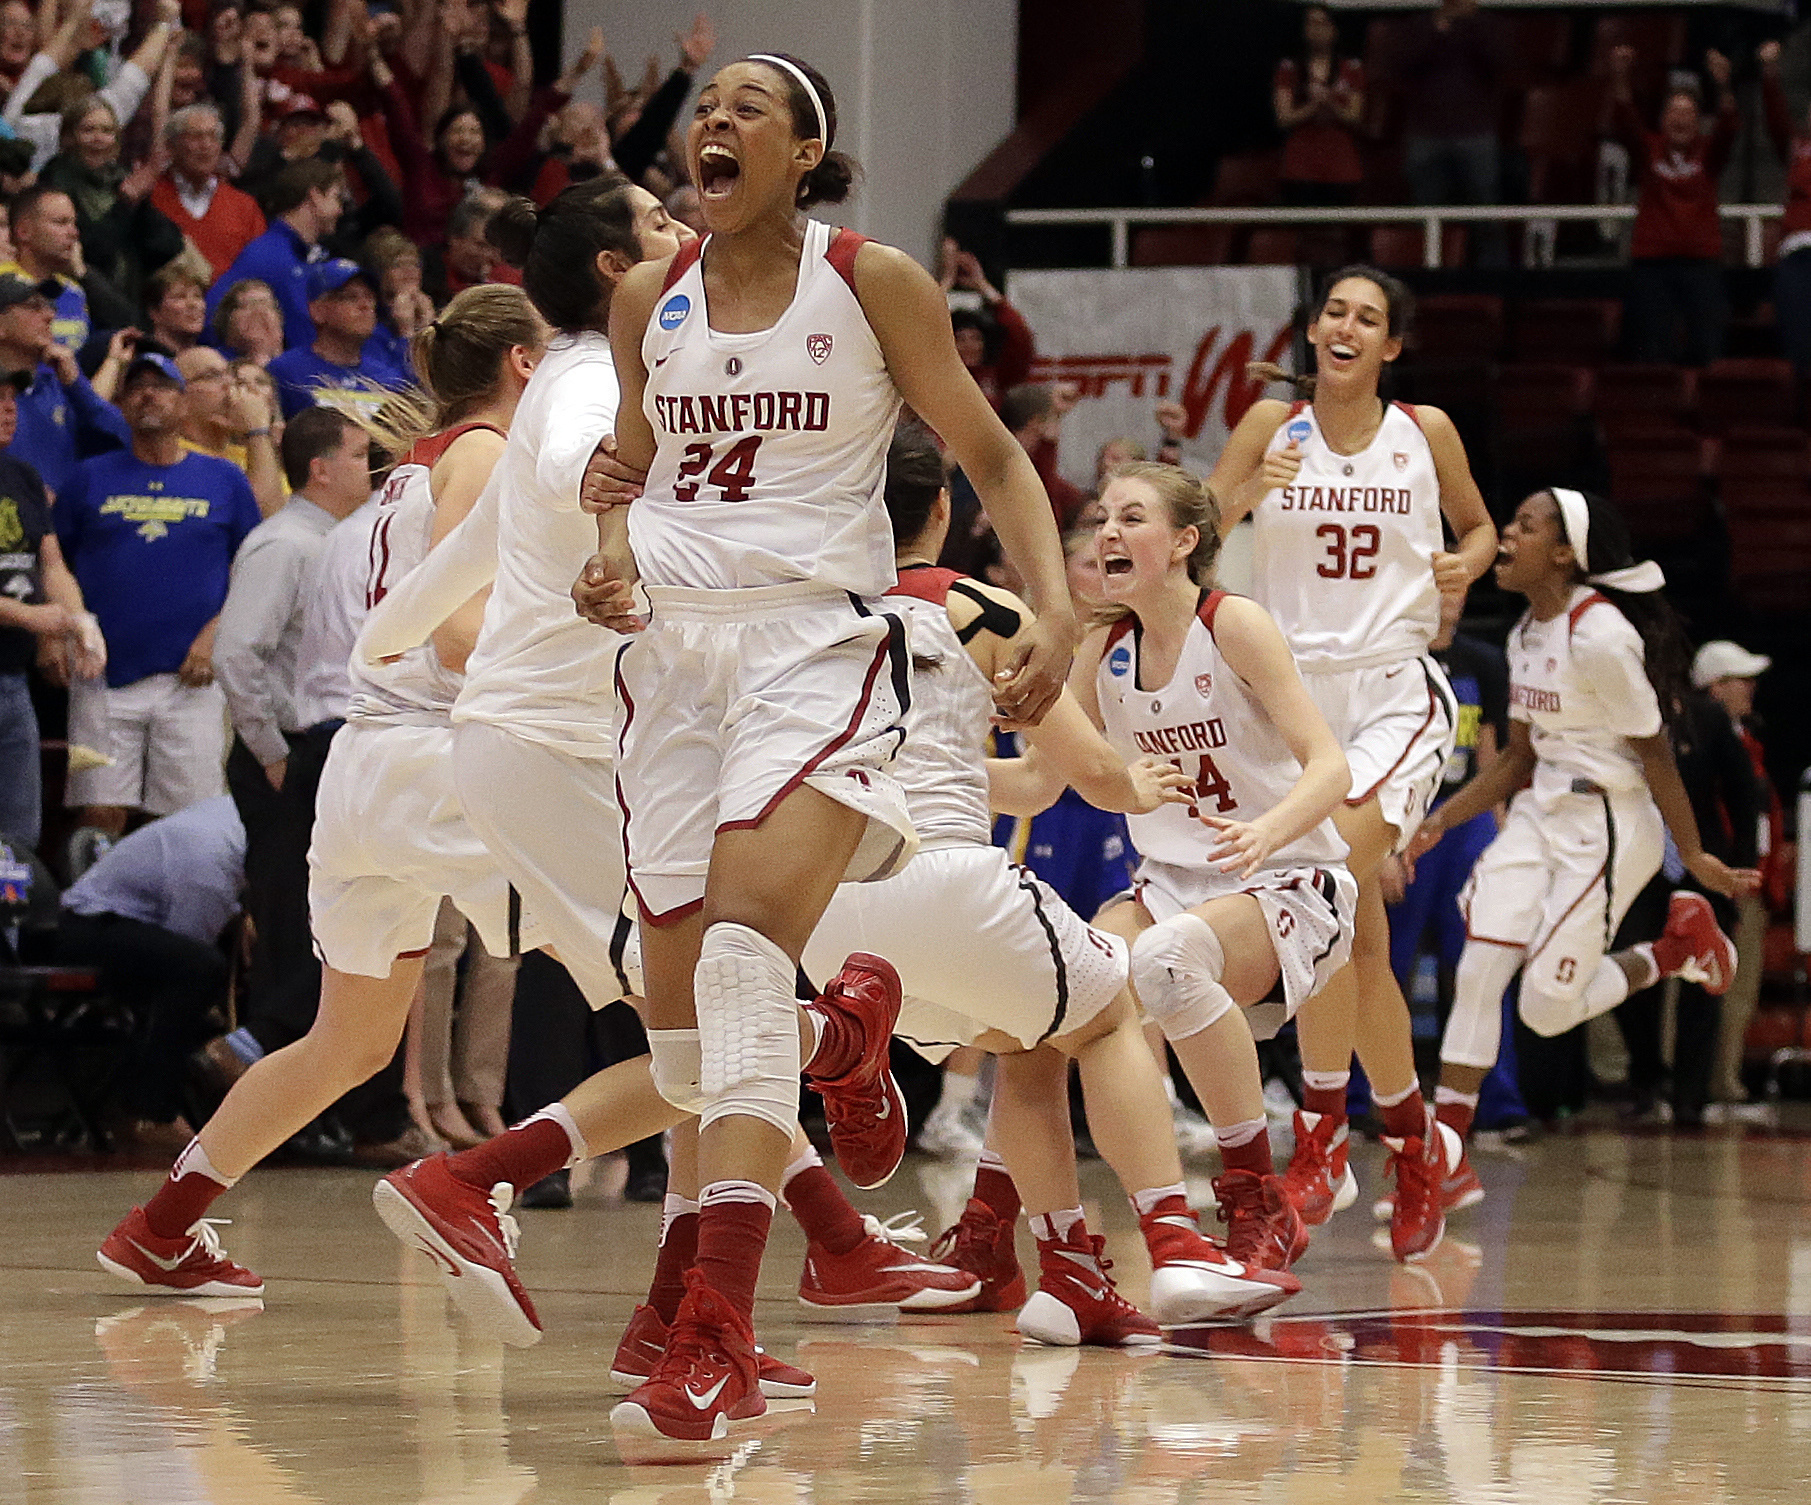 FILE - In this March 21, 2016, file photo, Stanford's Erica McCall, left, Karlie Samuelson (44) and Kailee Johnson (32) celebrate the win over South Dakota State at the end of a second-round women's college basketball game in the NCAA Tournament, in Stanf